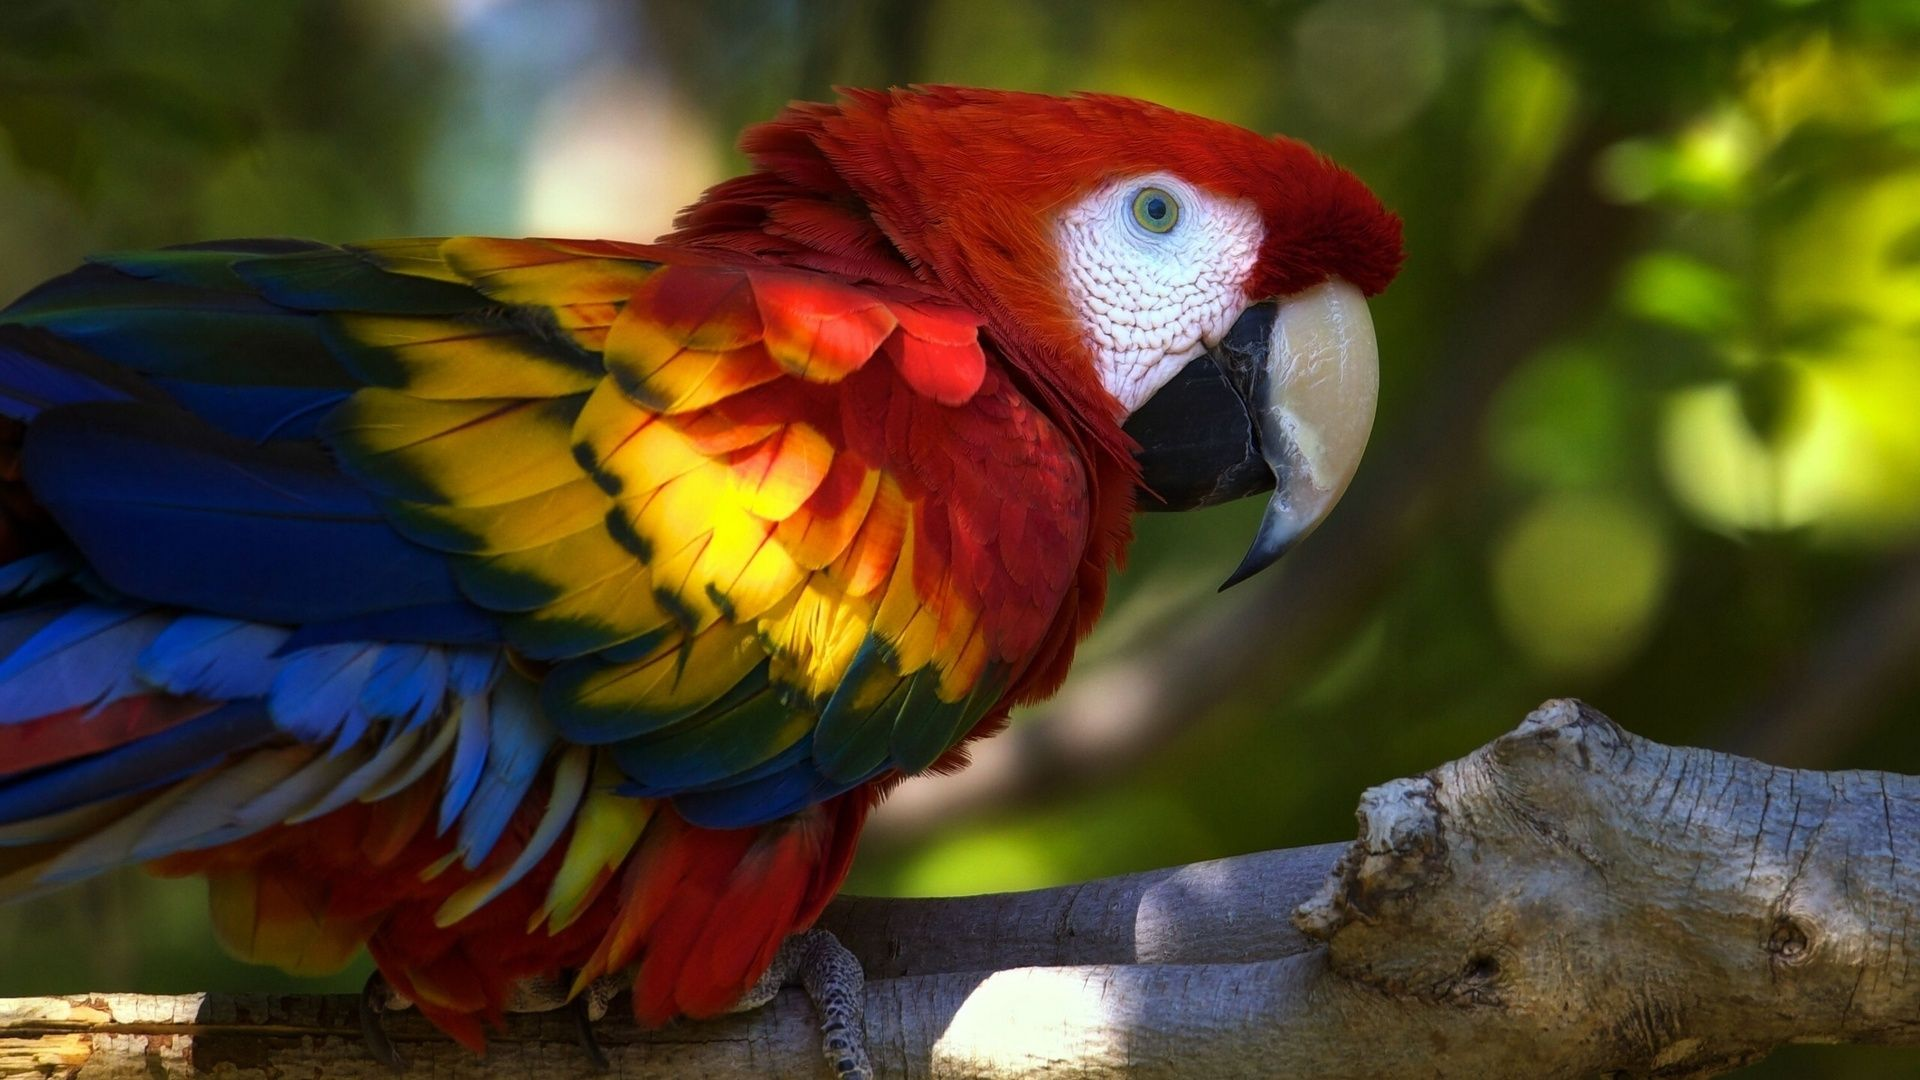 Parrot Macaw 2560